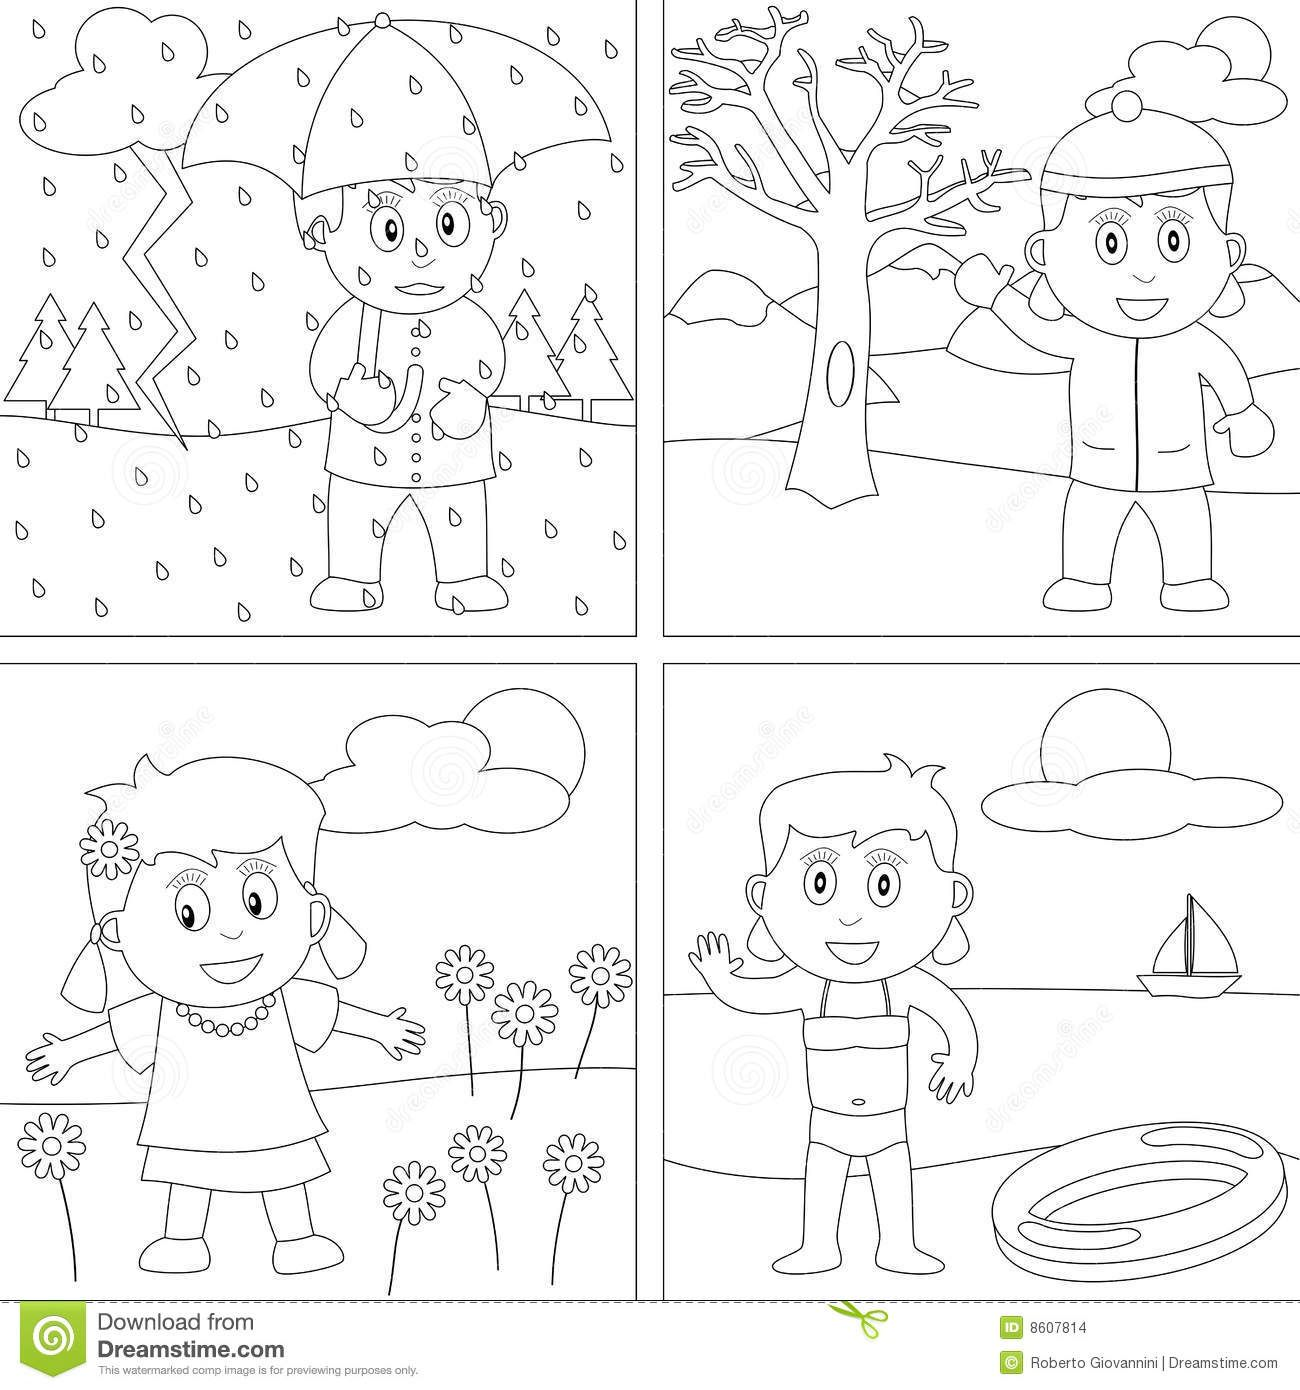 Printable Seasons Coloring Pictures With Seasons Coloring